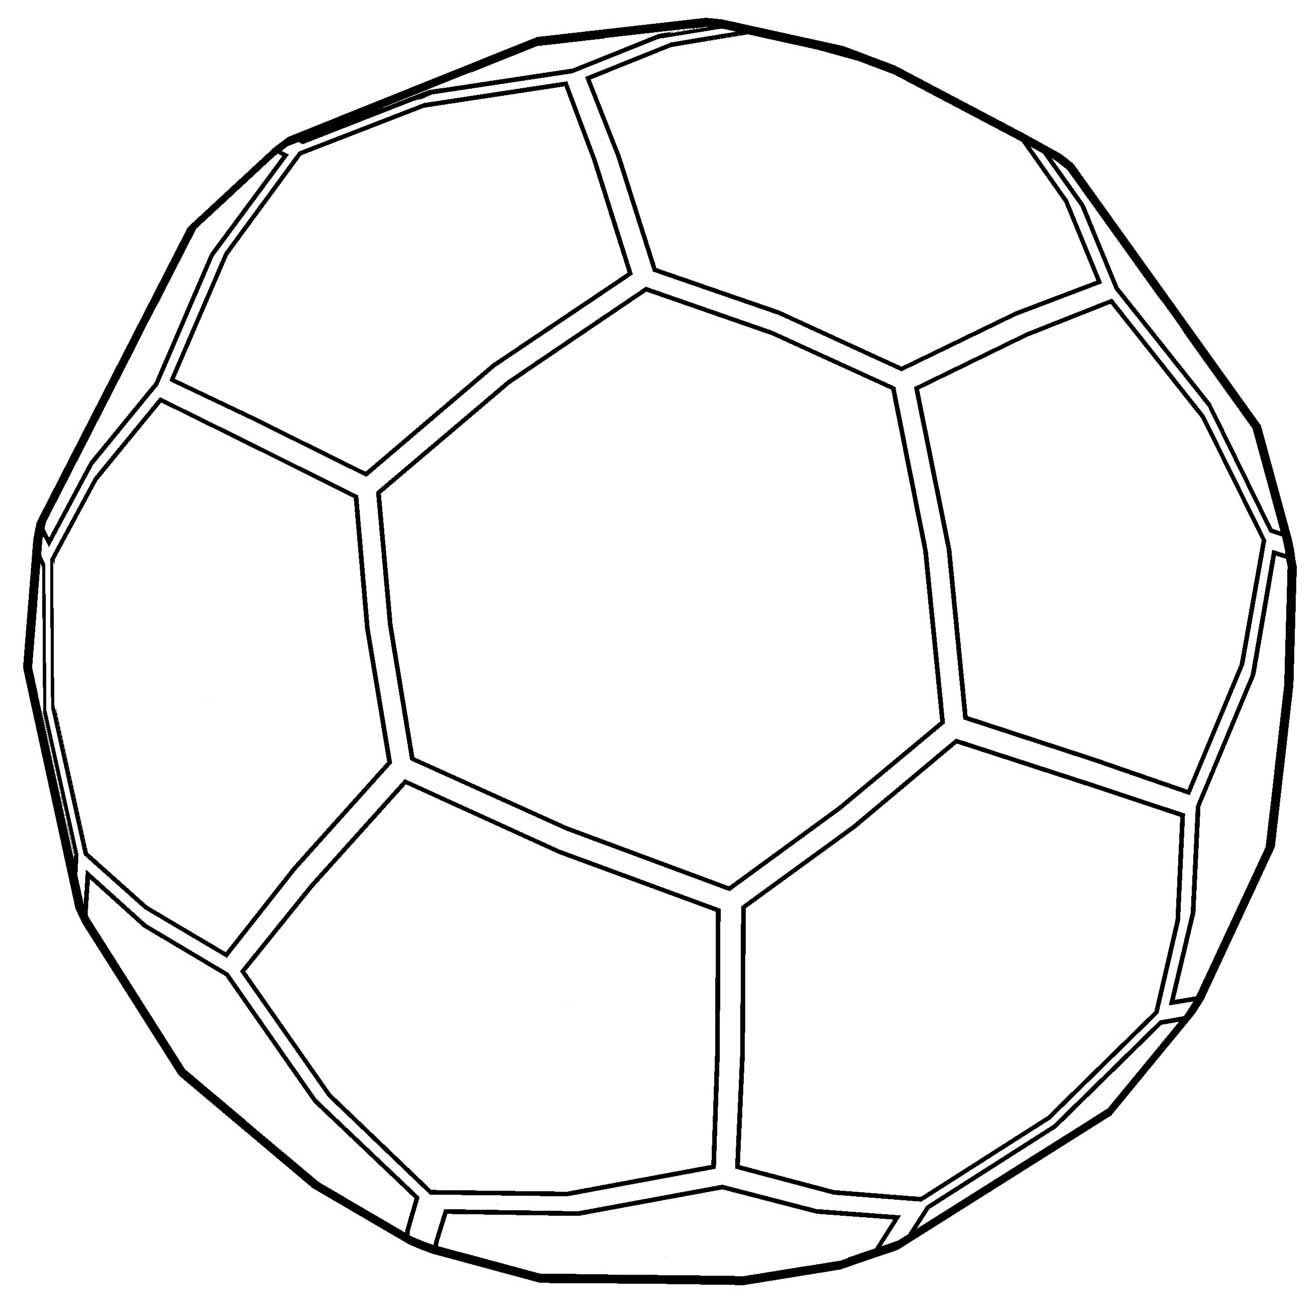 cool Soccer Ball Outline Coloring Page | Soccer ball ...